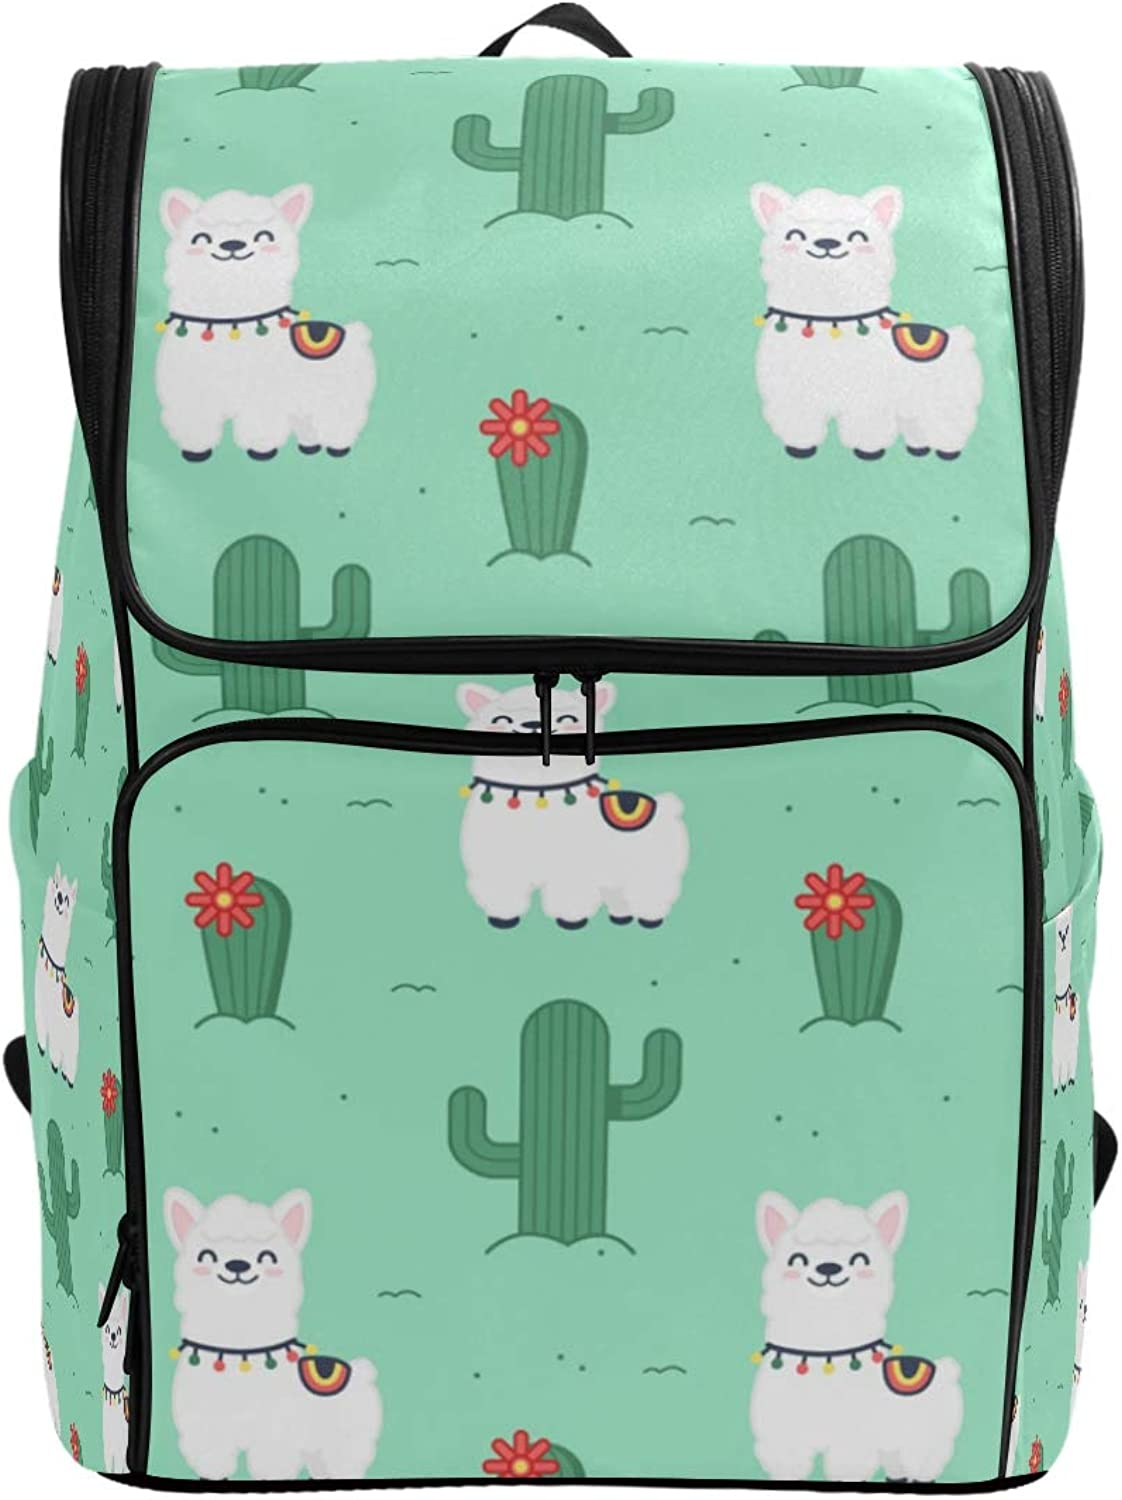 FANTAZIO Cute Smiling Alpaca Pattern Laptop Outdoor Backpack Travel Hiking Camping Rucksack Pack, Casual Large College School Daypack